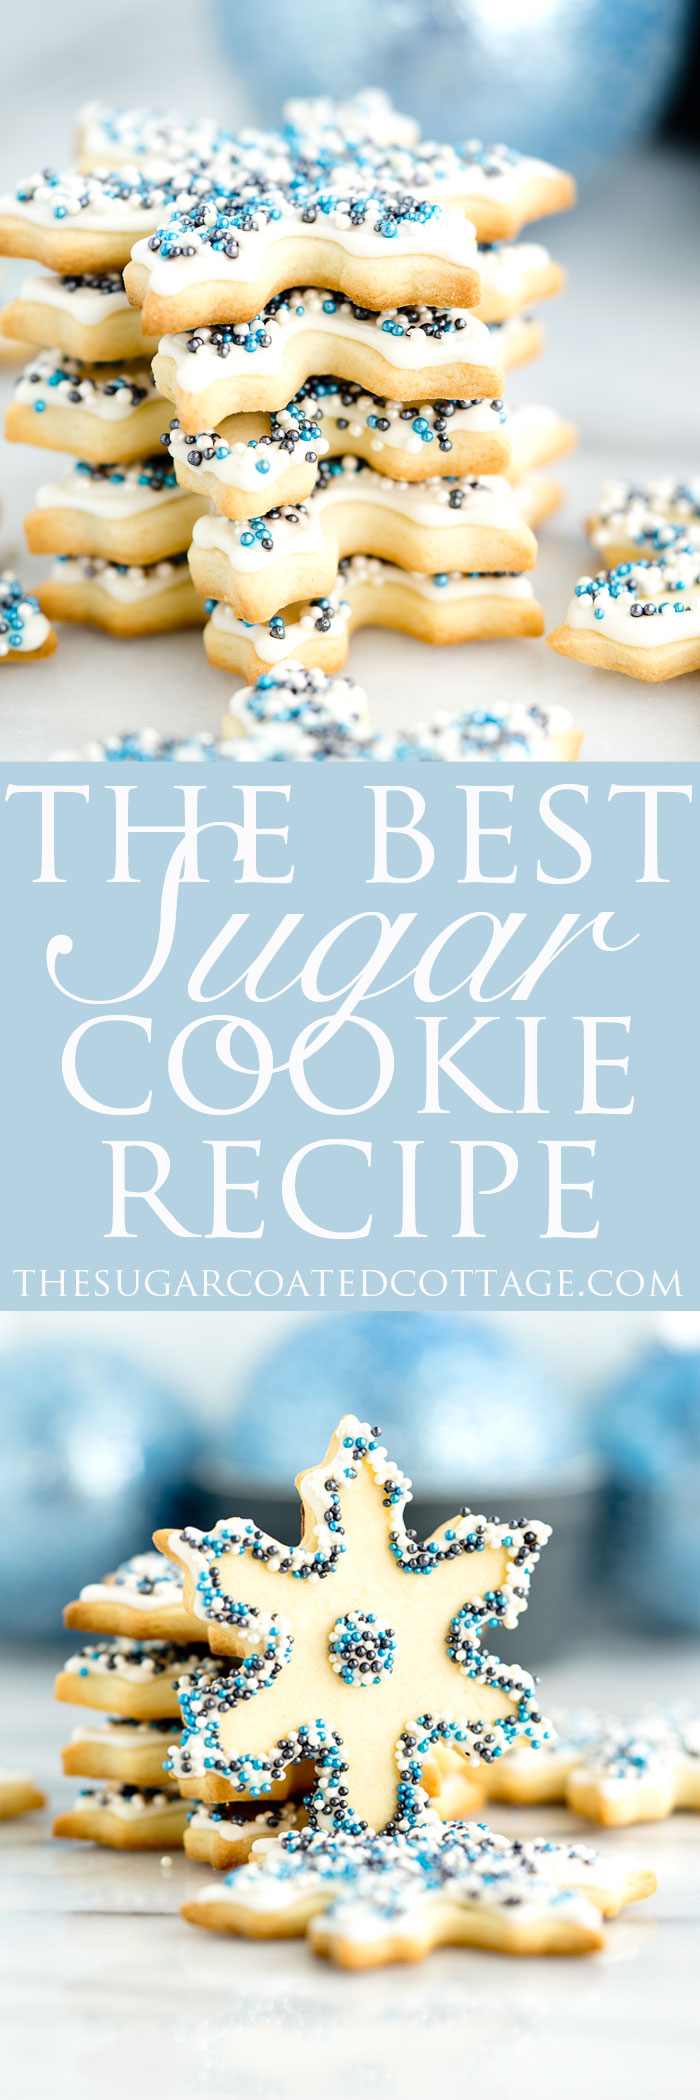 The Best Sugar Cookie Recipe. Perfect for cut out cookies, this dough does not require refrigeration before rolling out or before baking. And the dough doesn't spread when baking either! | thesugarcoatedcottage.com